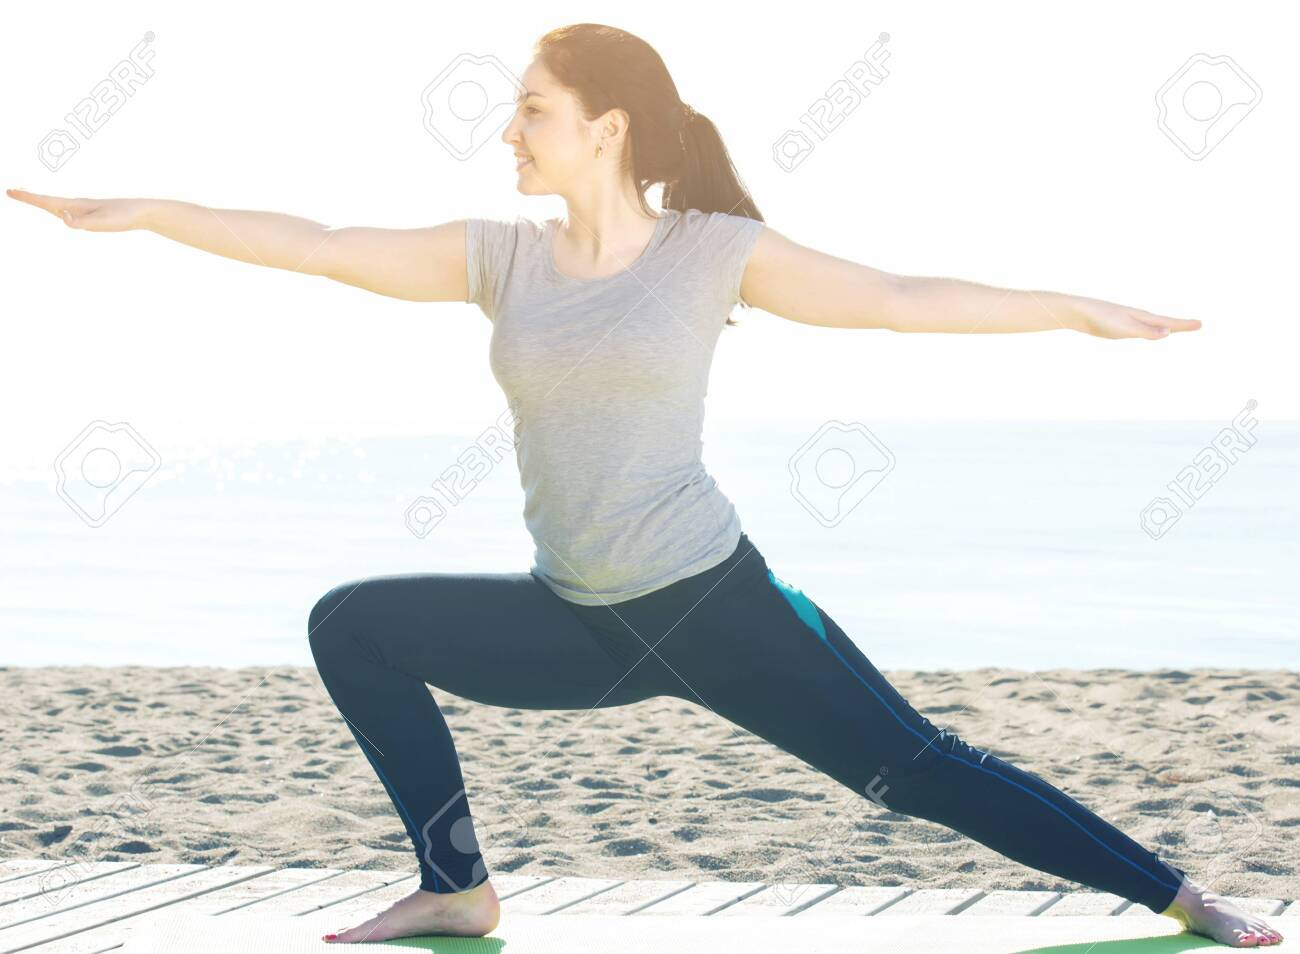 Young Spanish Woman Doing Yoga Poses On Sunny Beach By Ocean Stock Photo Picture And Royalty Free Image Image 121191375